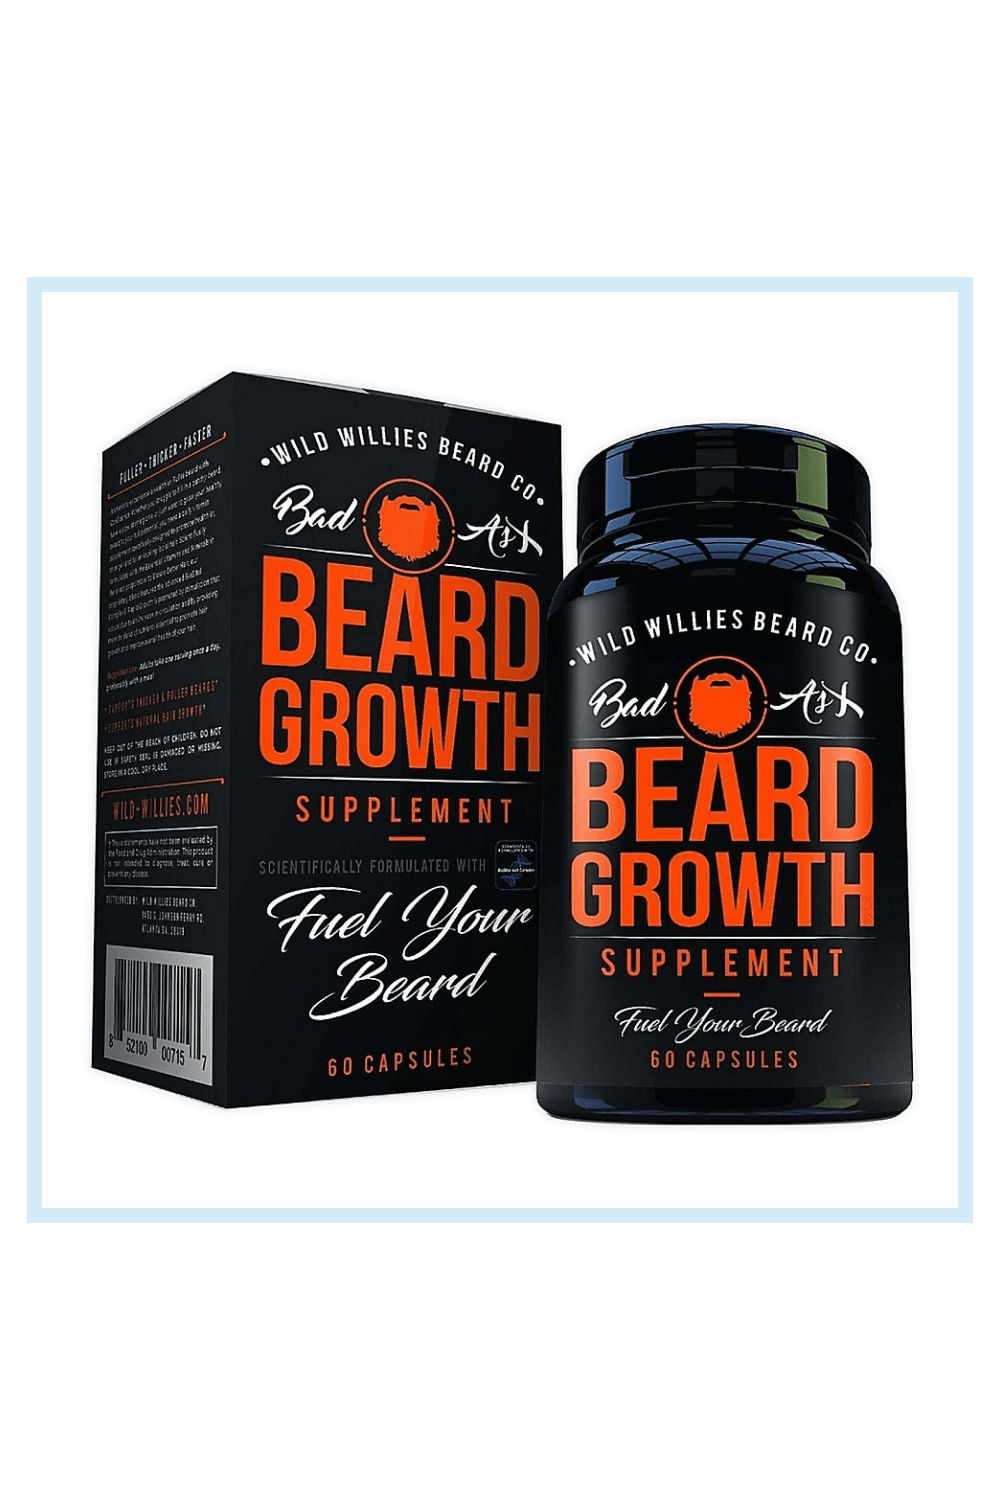 Wild Willies 60-Capsule Beard Growth Supplement - The scientifically formulated Wild Willies Beard Growth Supplement is designed to help you achieve a fuller, thicker beard. Each of these 60 capsules fosters stronger, faster, and healthier facial hair growth, so your beard can really shine.